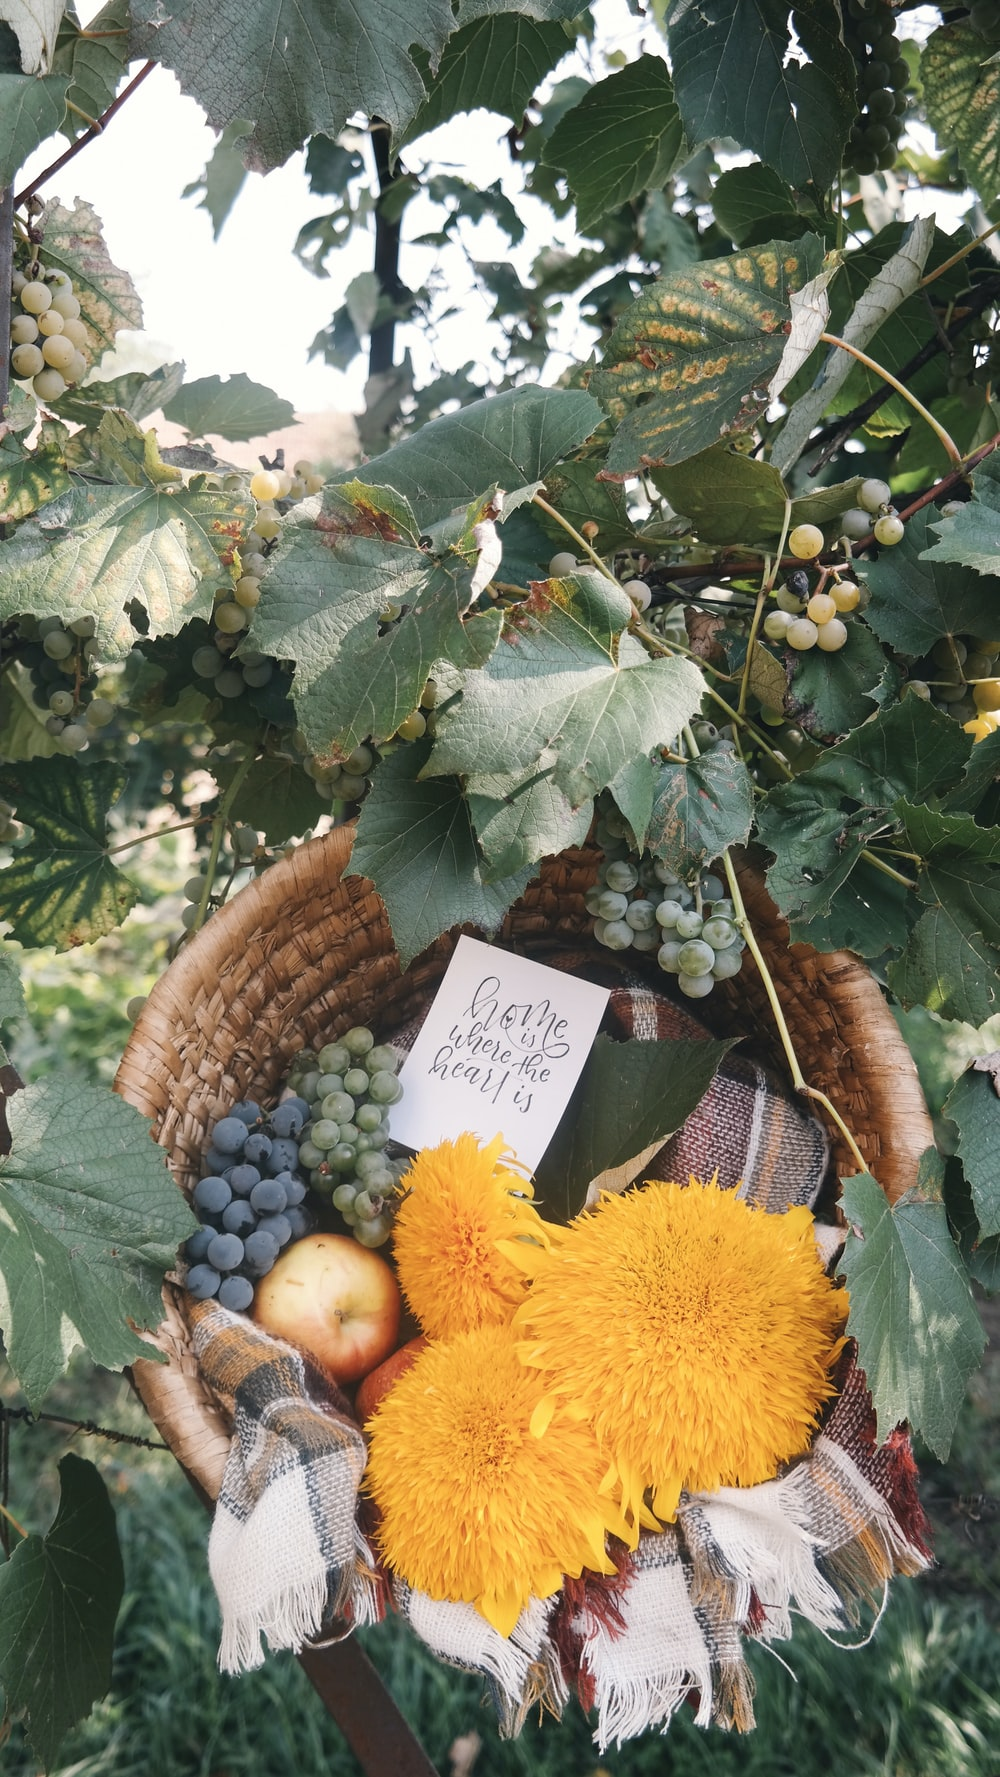 assorted fruits in brown basket